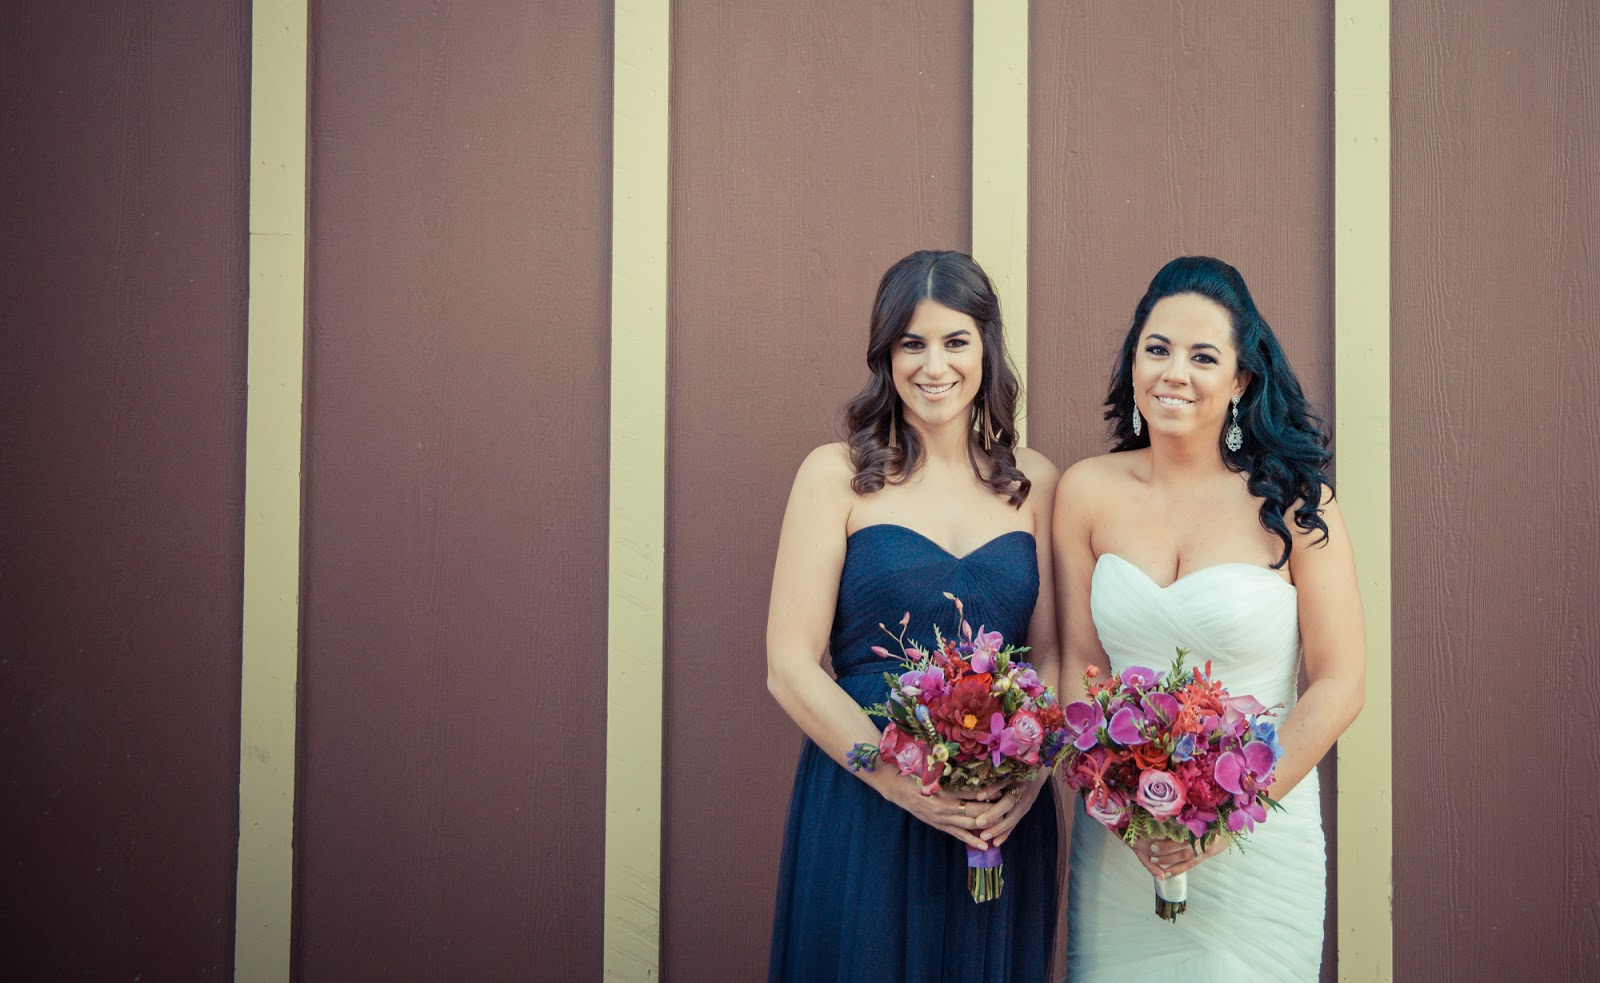 Bride and maid of honor photo shoot in Seattle - culitvatedrambler.com